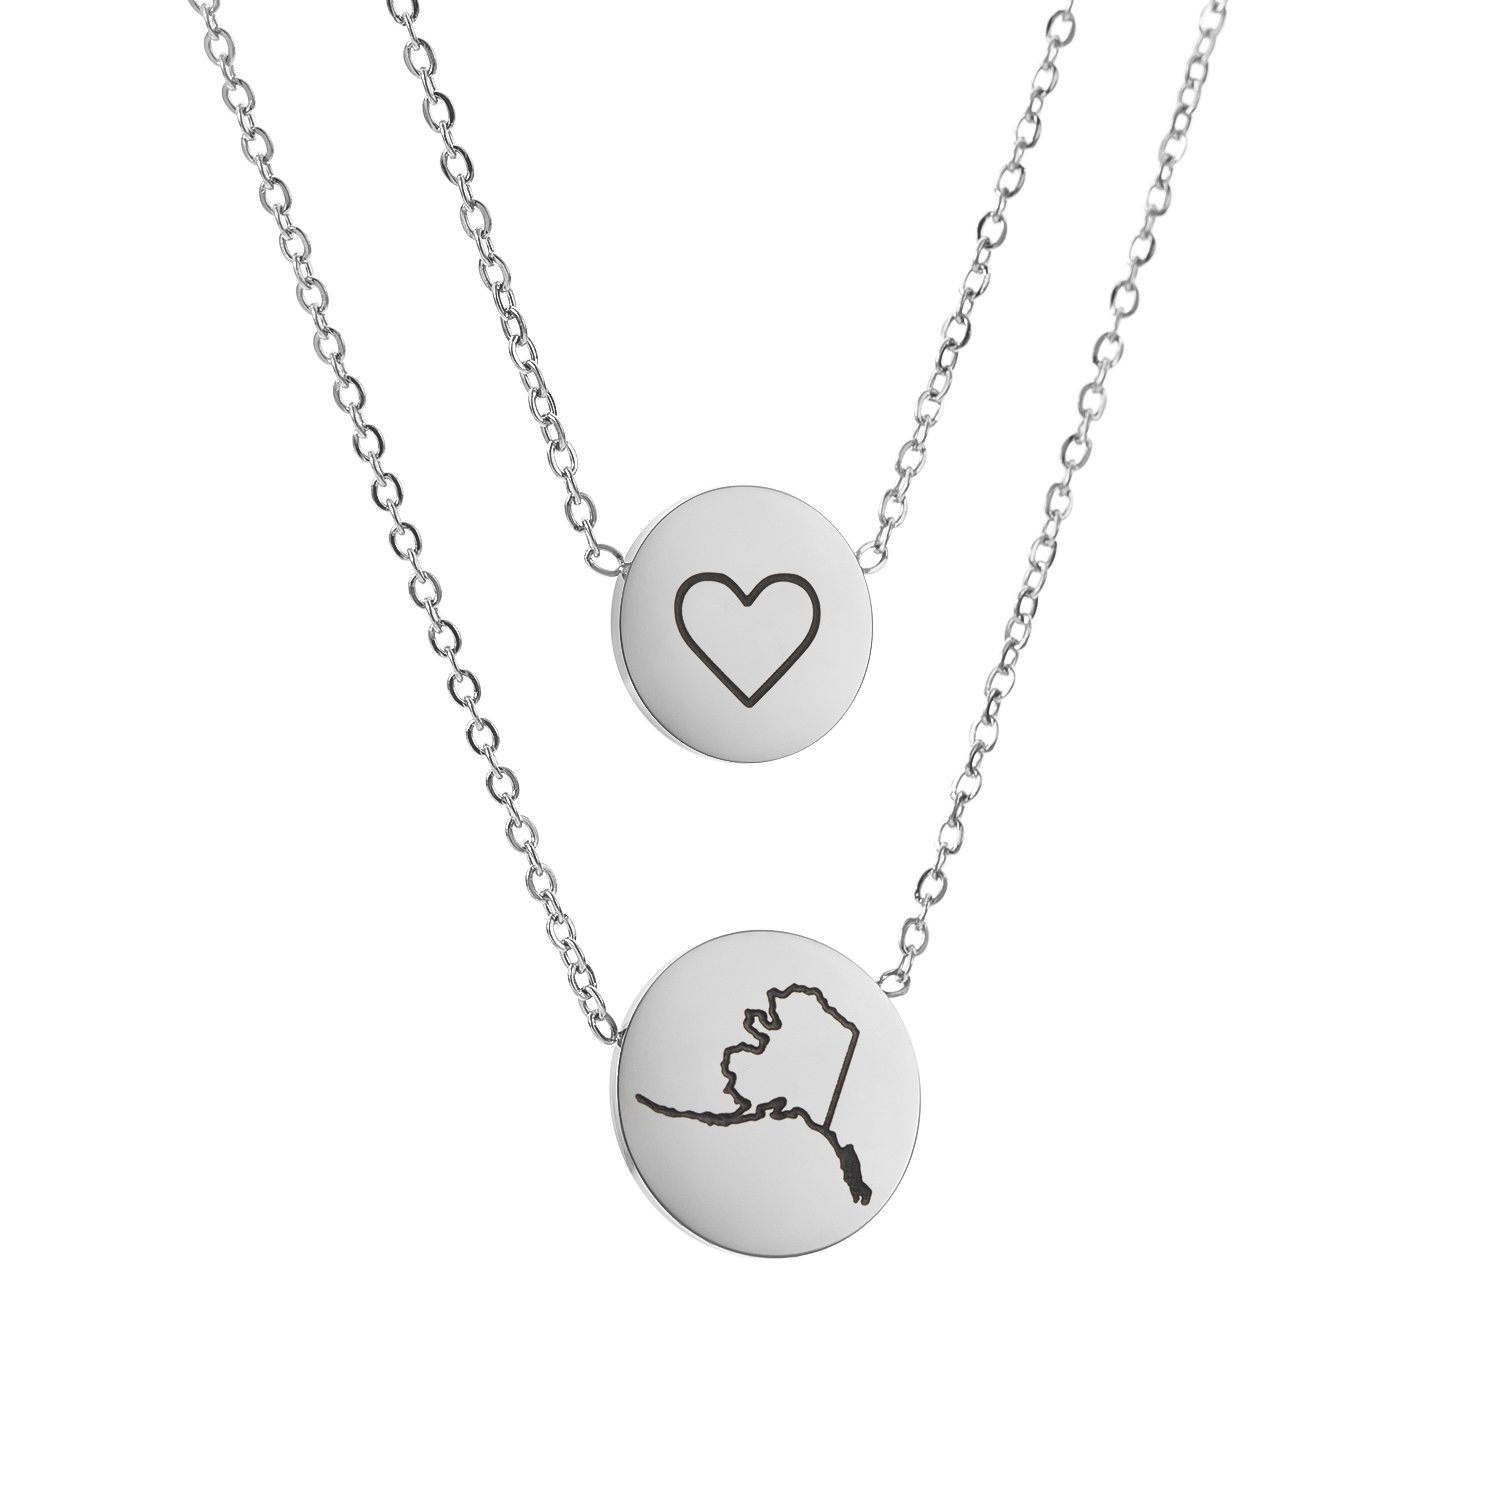 State Pendant Necklace Alaska AK - Heart Disc Double Chain Stainless Steel